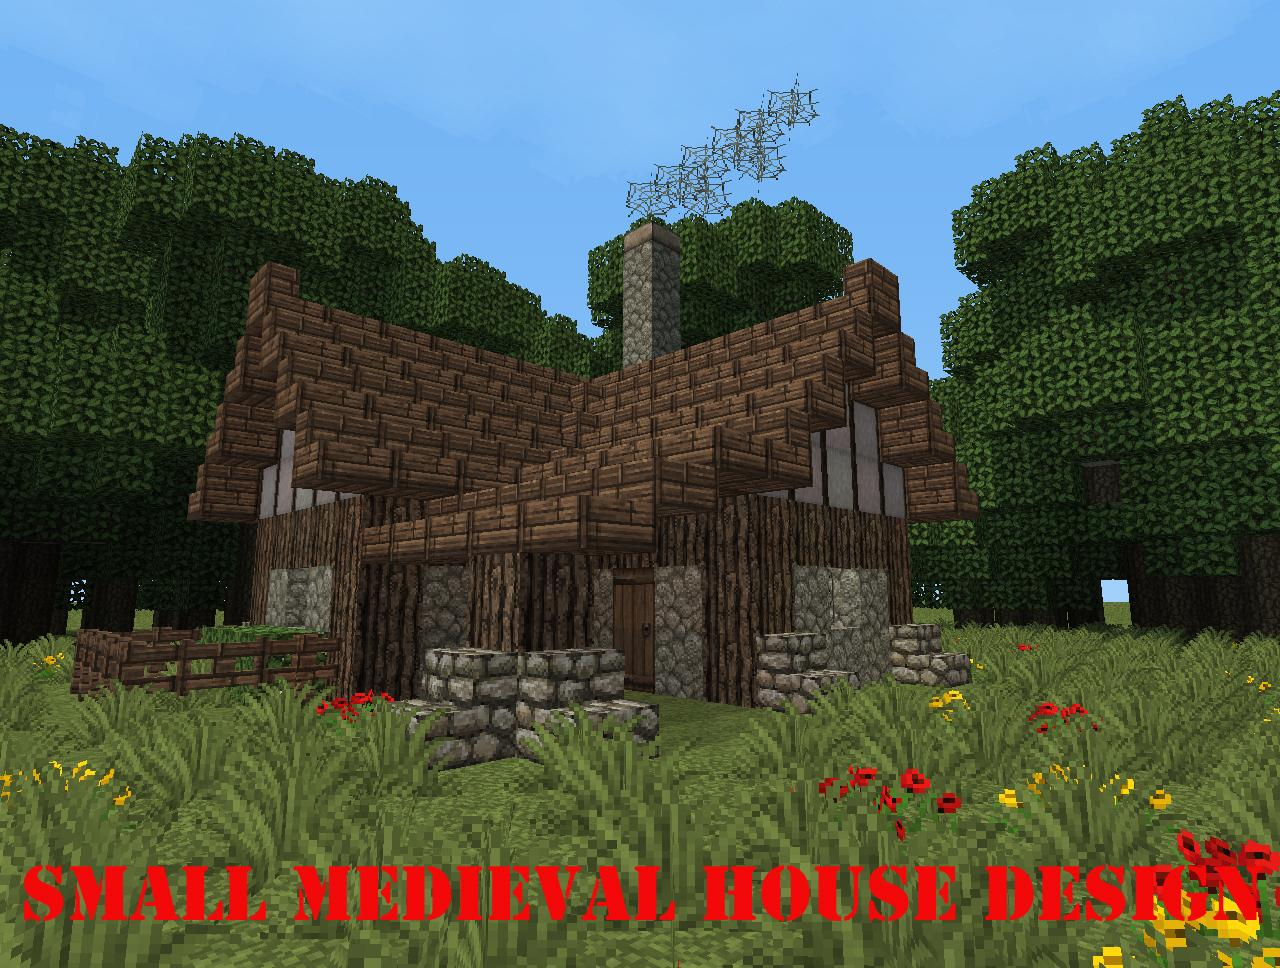 Small medieval house design minecraft project - Design house minecraft ...